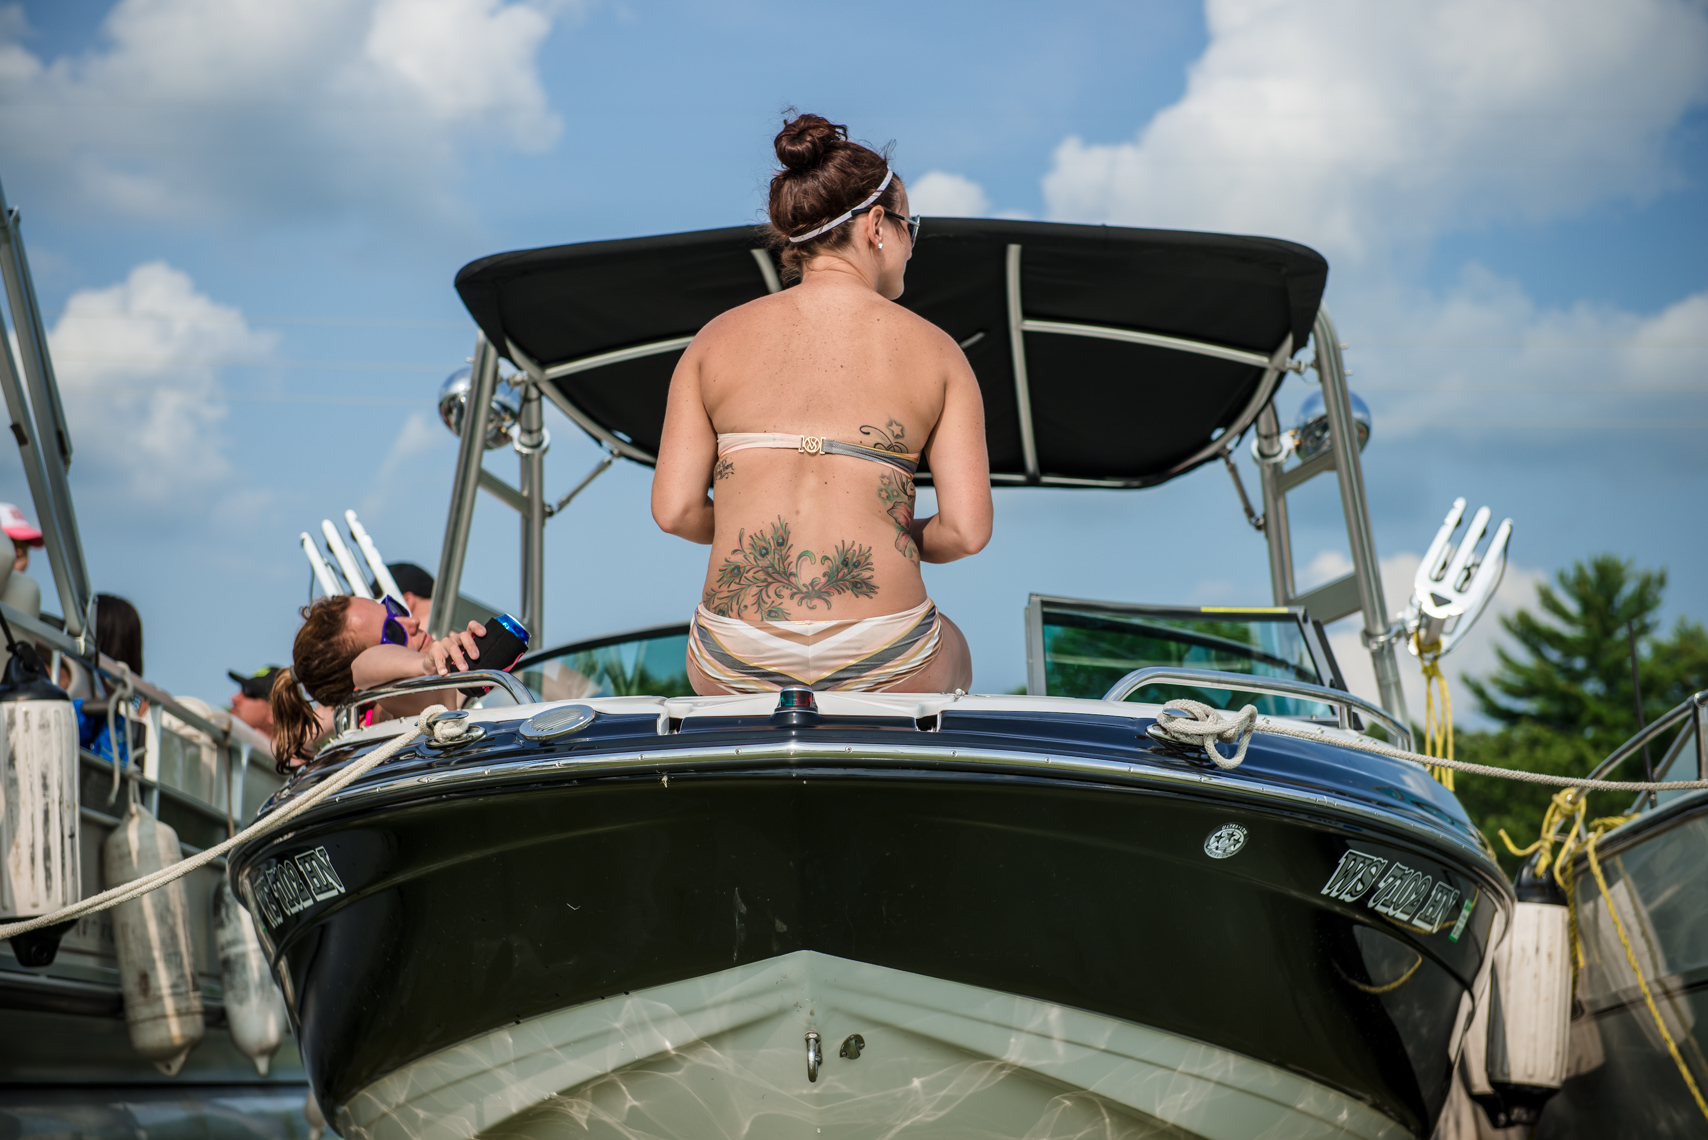 Tattoo, girls, boat, bathing suit, summer, blue sky, clouds, lake, lifestyle, reportage, Nashville, Chicago, Madison, Wisconsin, Tennessee, photojournalist